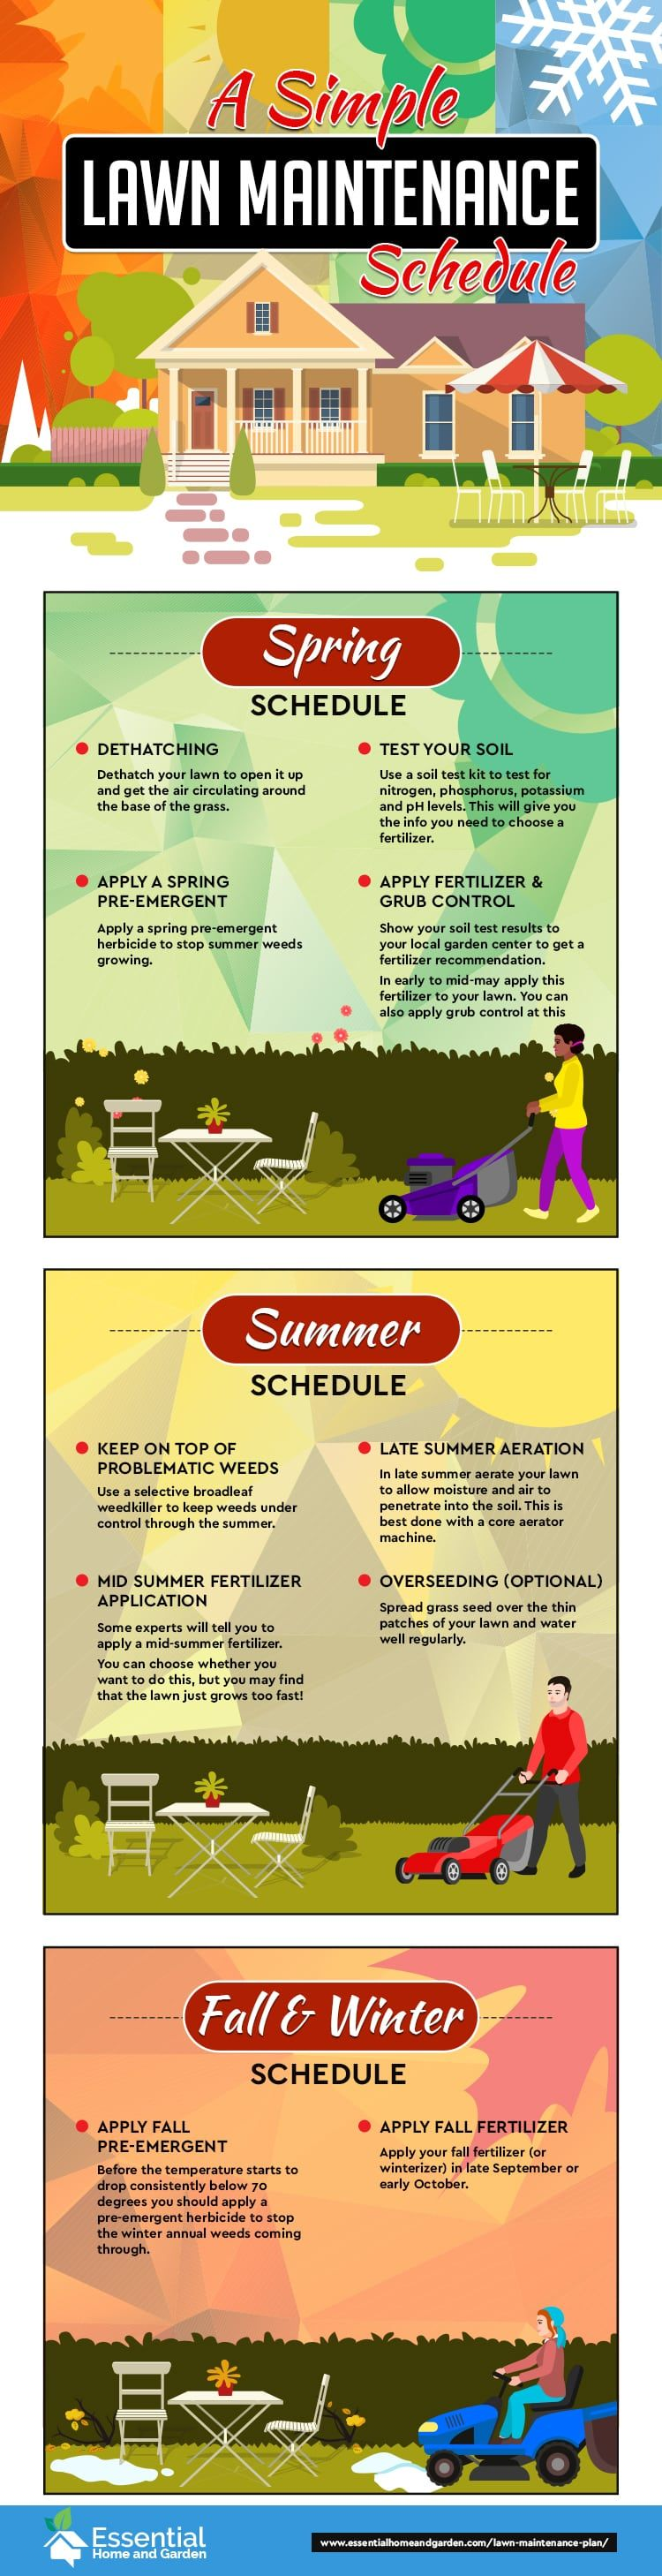 A Simple Lawn Maintenance Plan That Anyone Can Follow